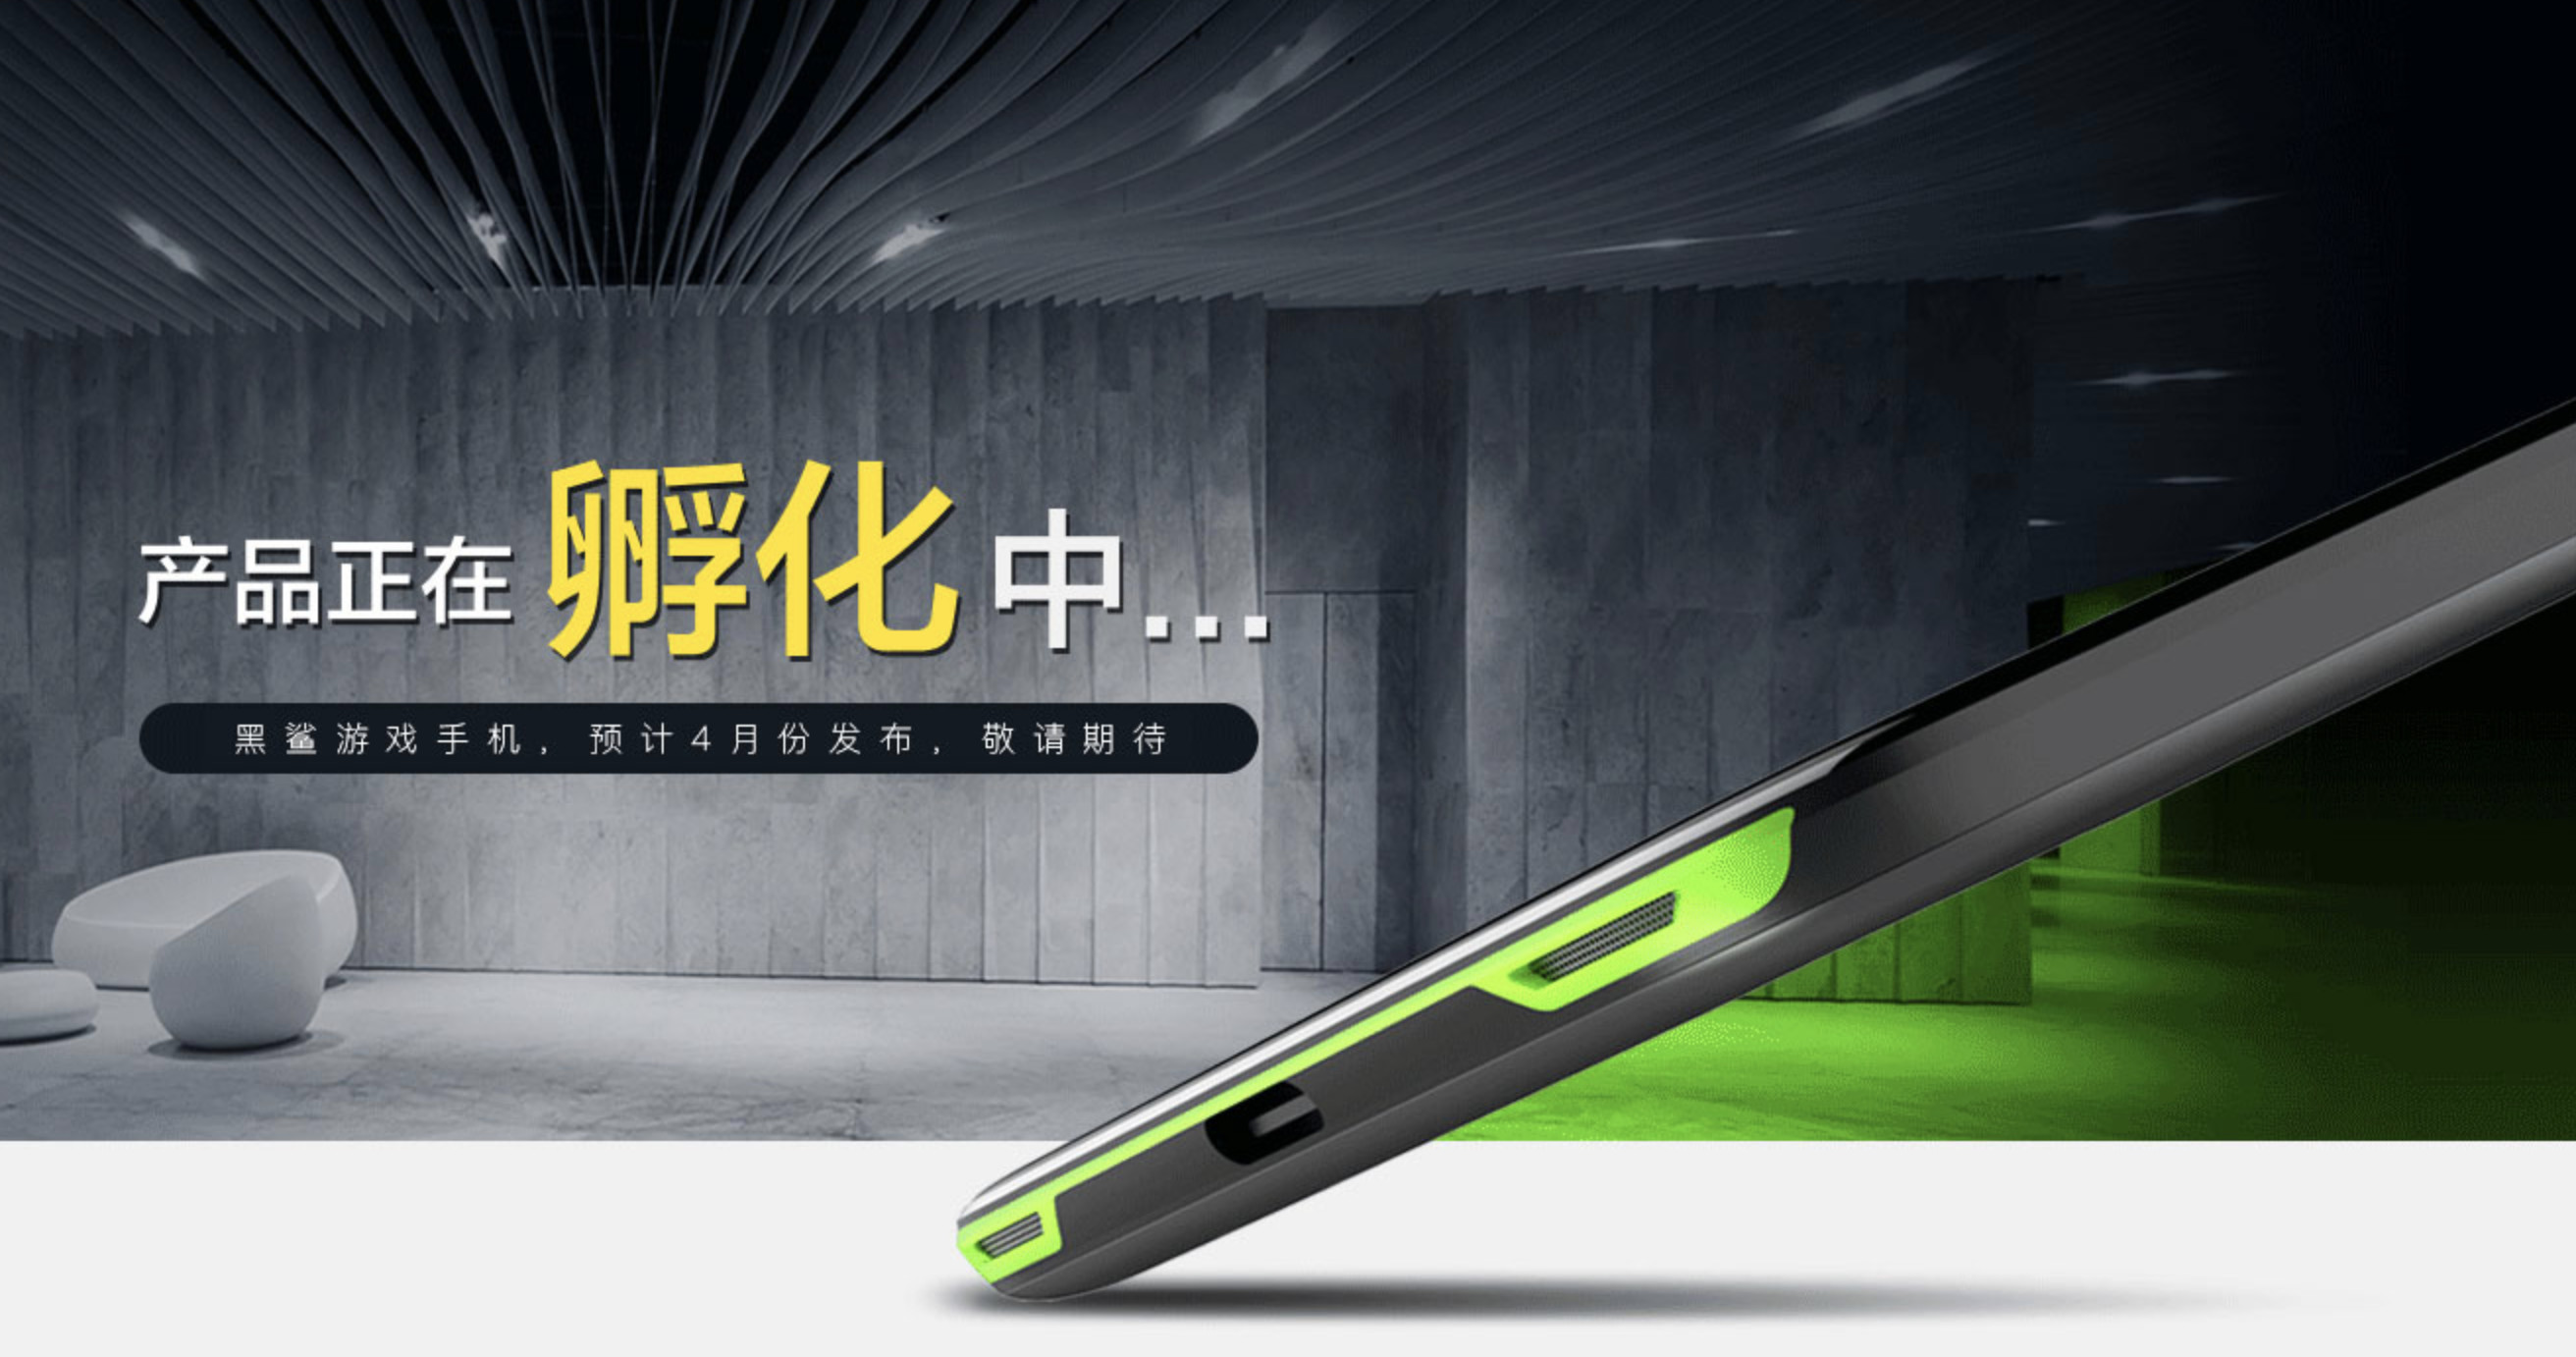 Xiaomi Black Shark gaming smartphone set to launch on April 13